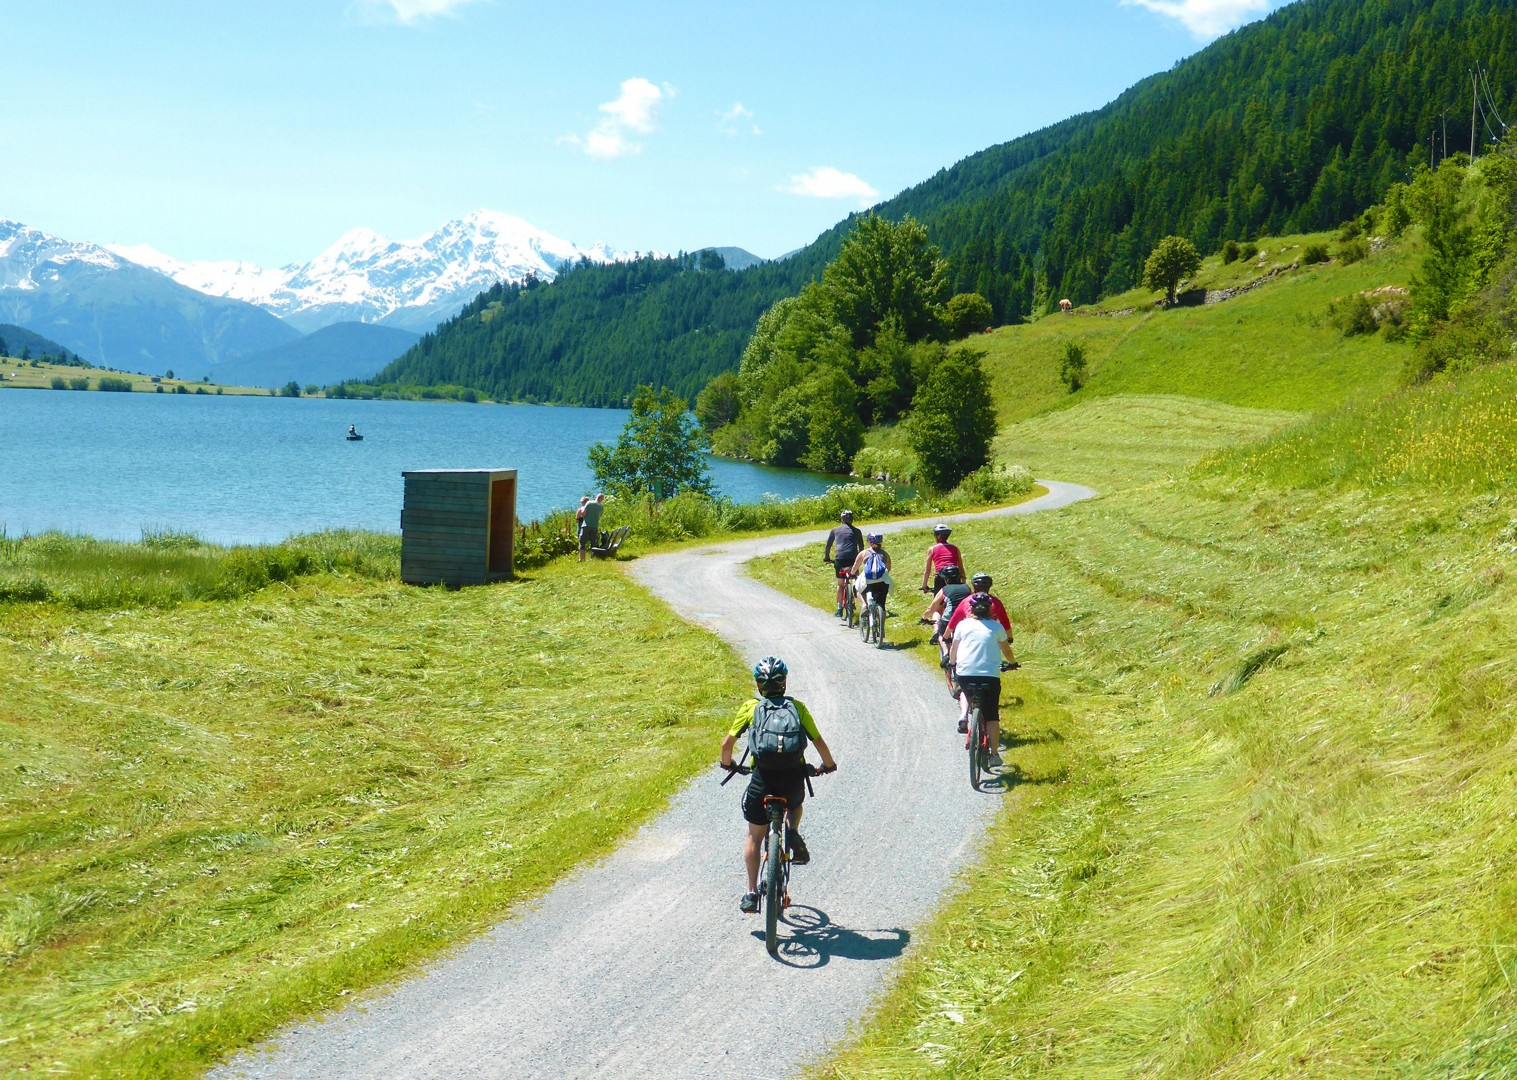 trumer-lakes-family-cycling-holiday-austria-austrian-lakes.jpg - Austria - Salzburg's Lake District - Self-Guided Family Cycling Holiday - Family Cycling